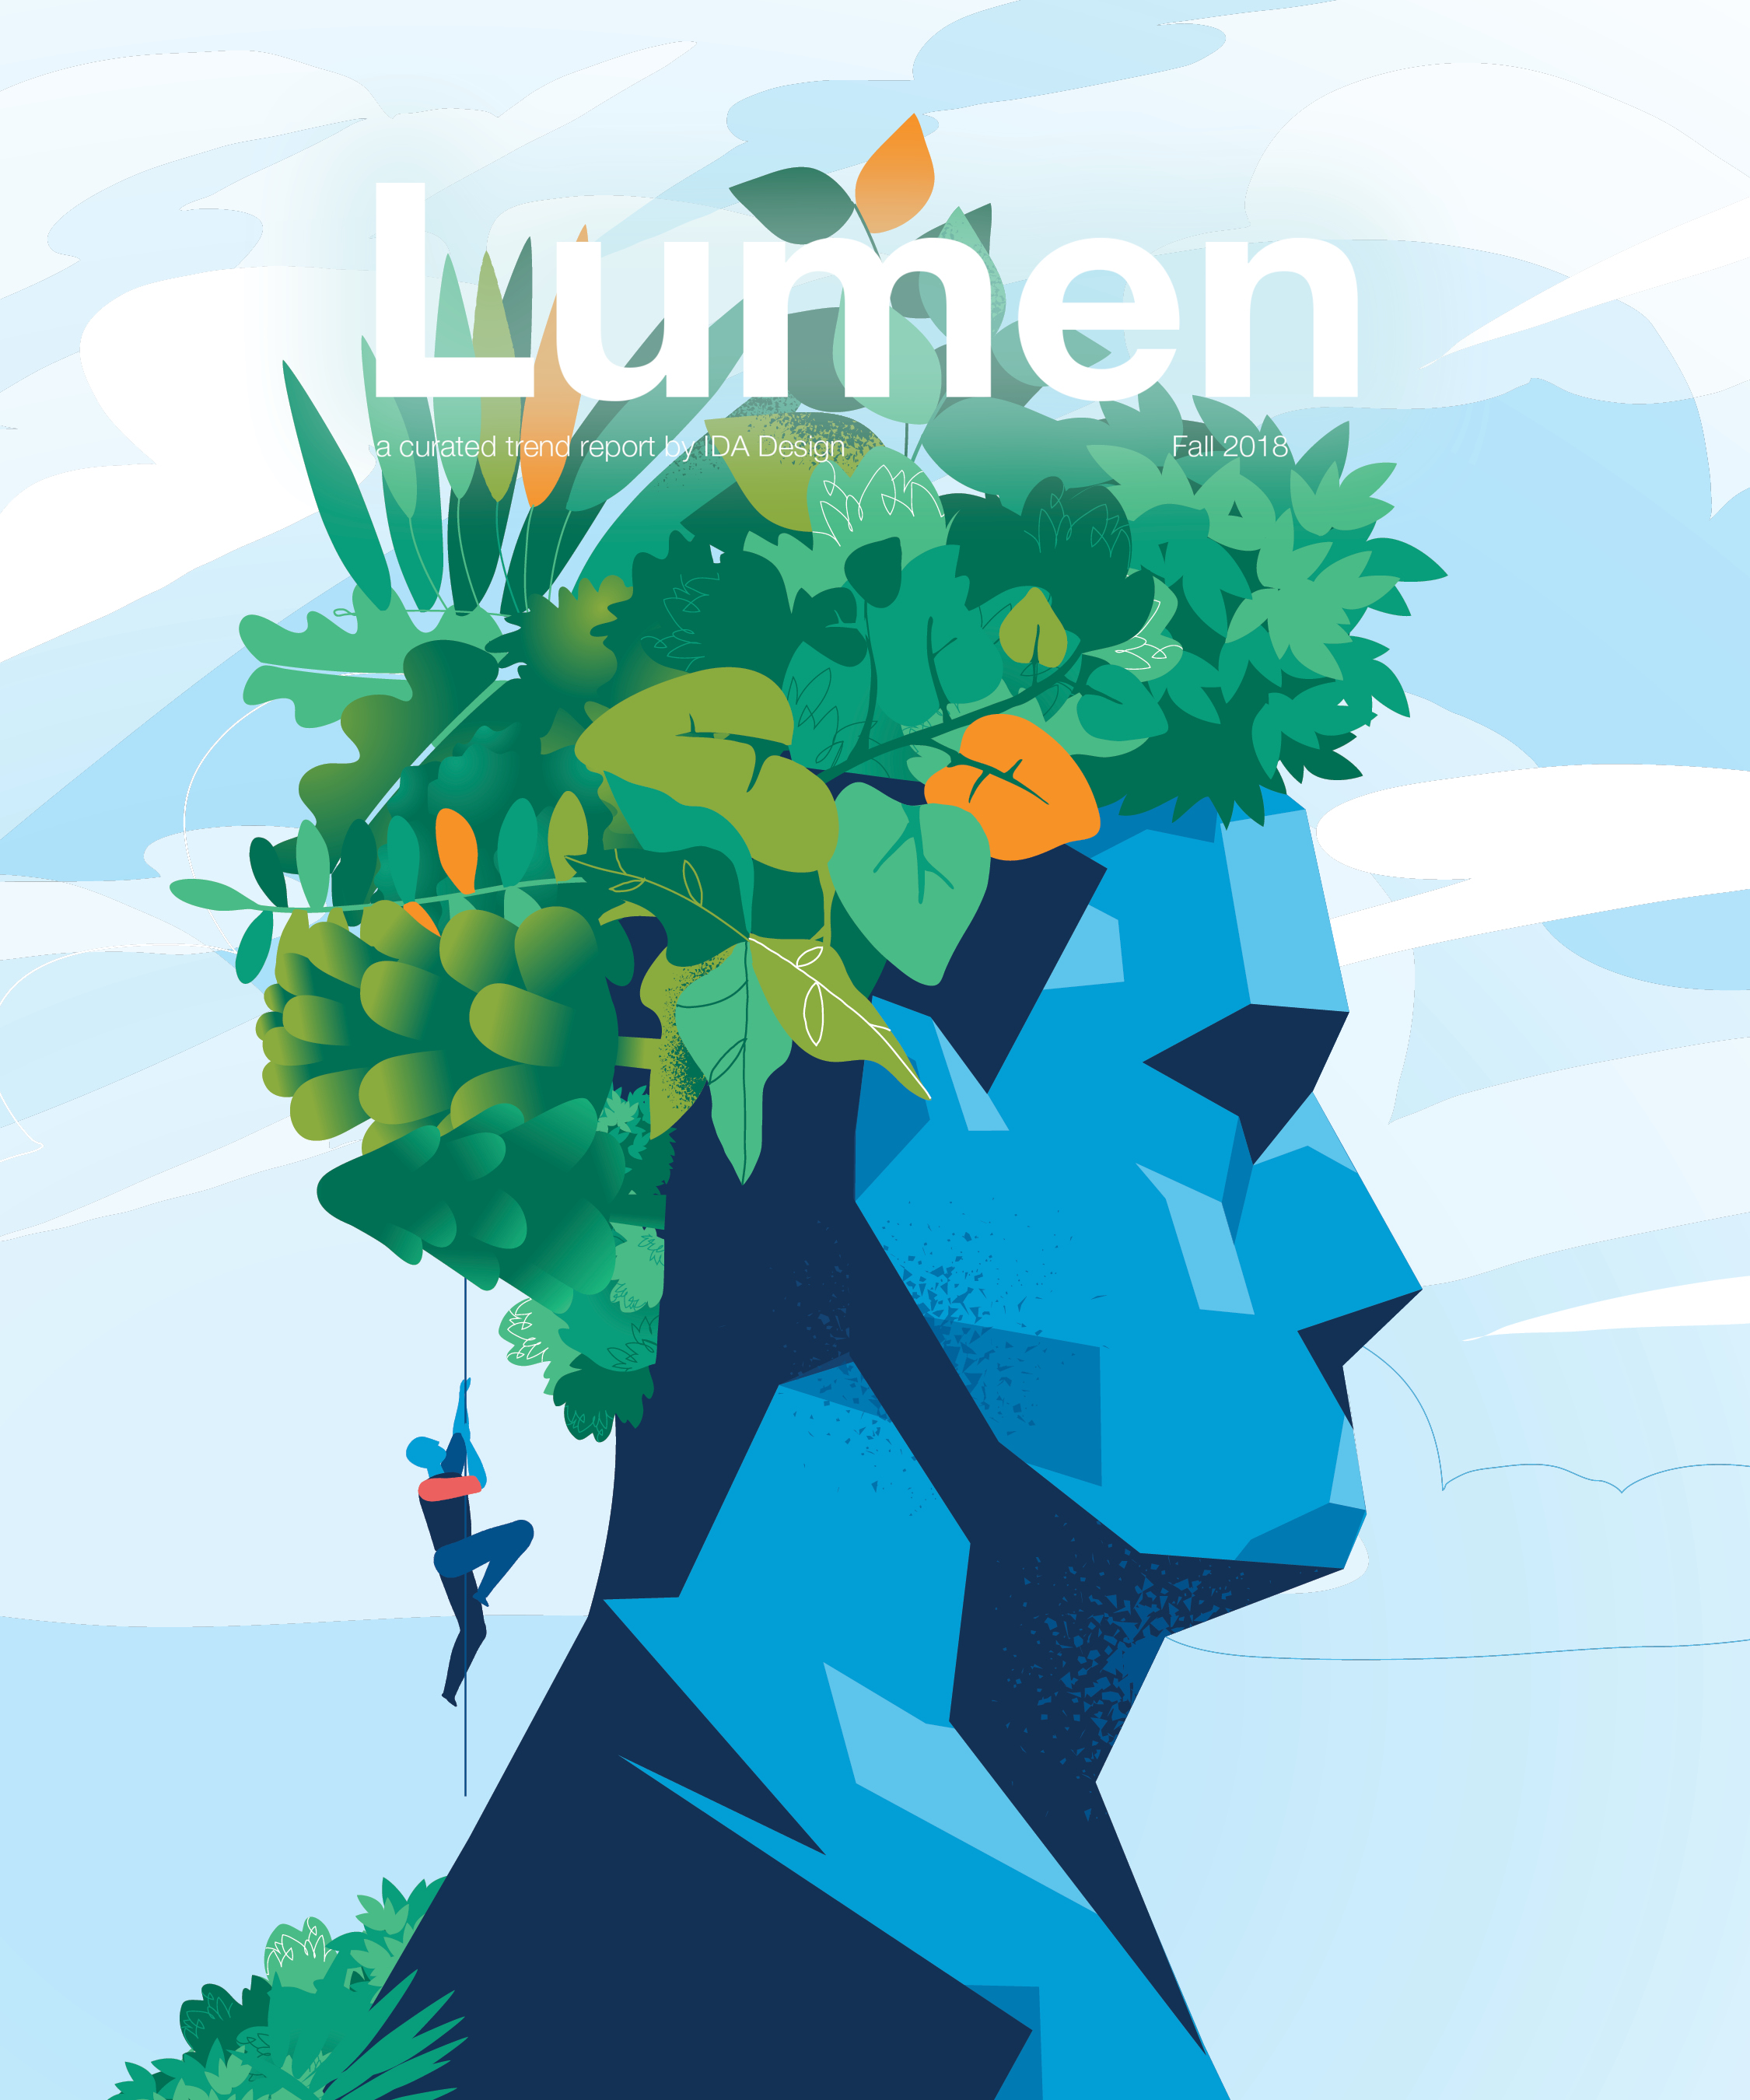 Lumen_vol 4 Fall 2018 Cover.jpg